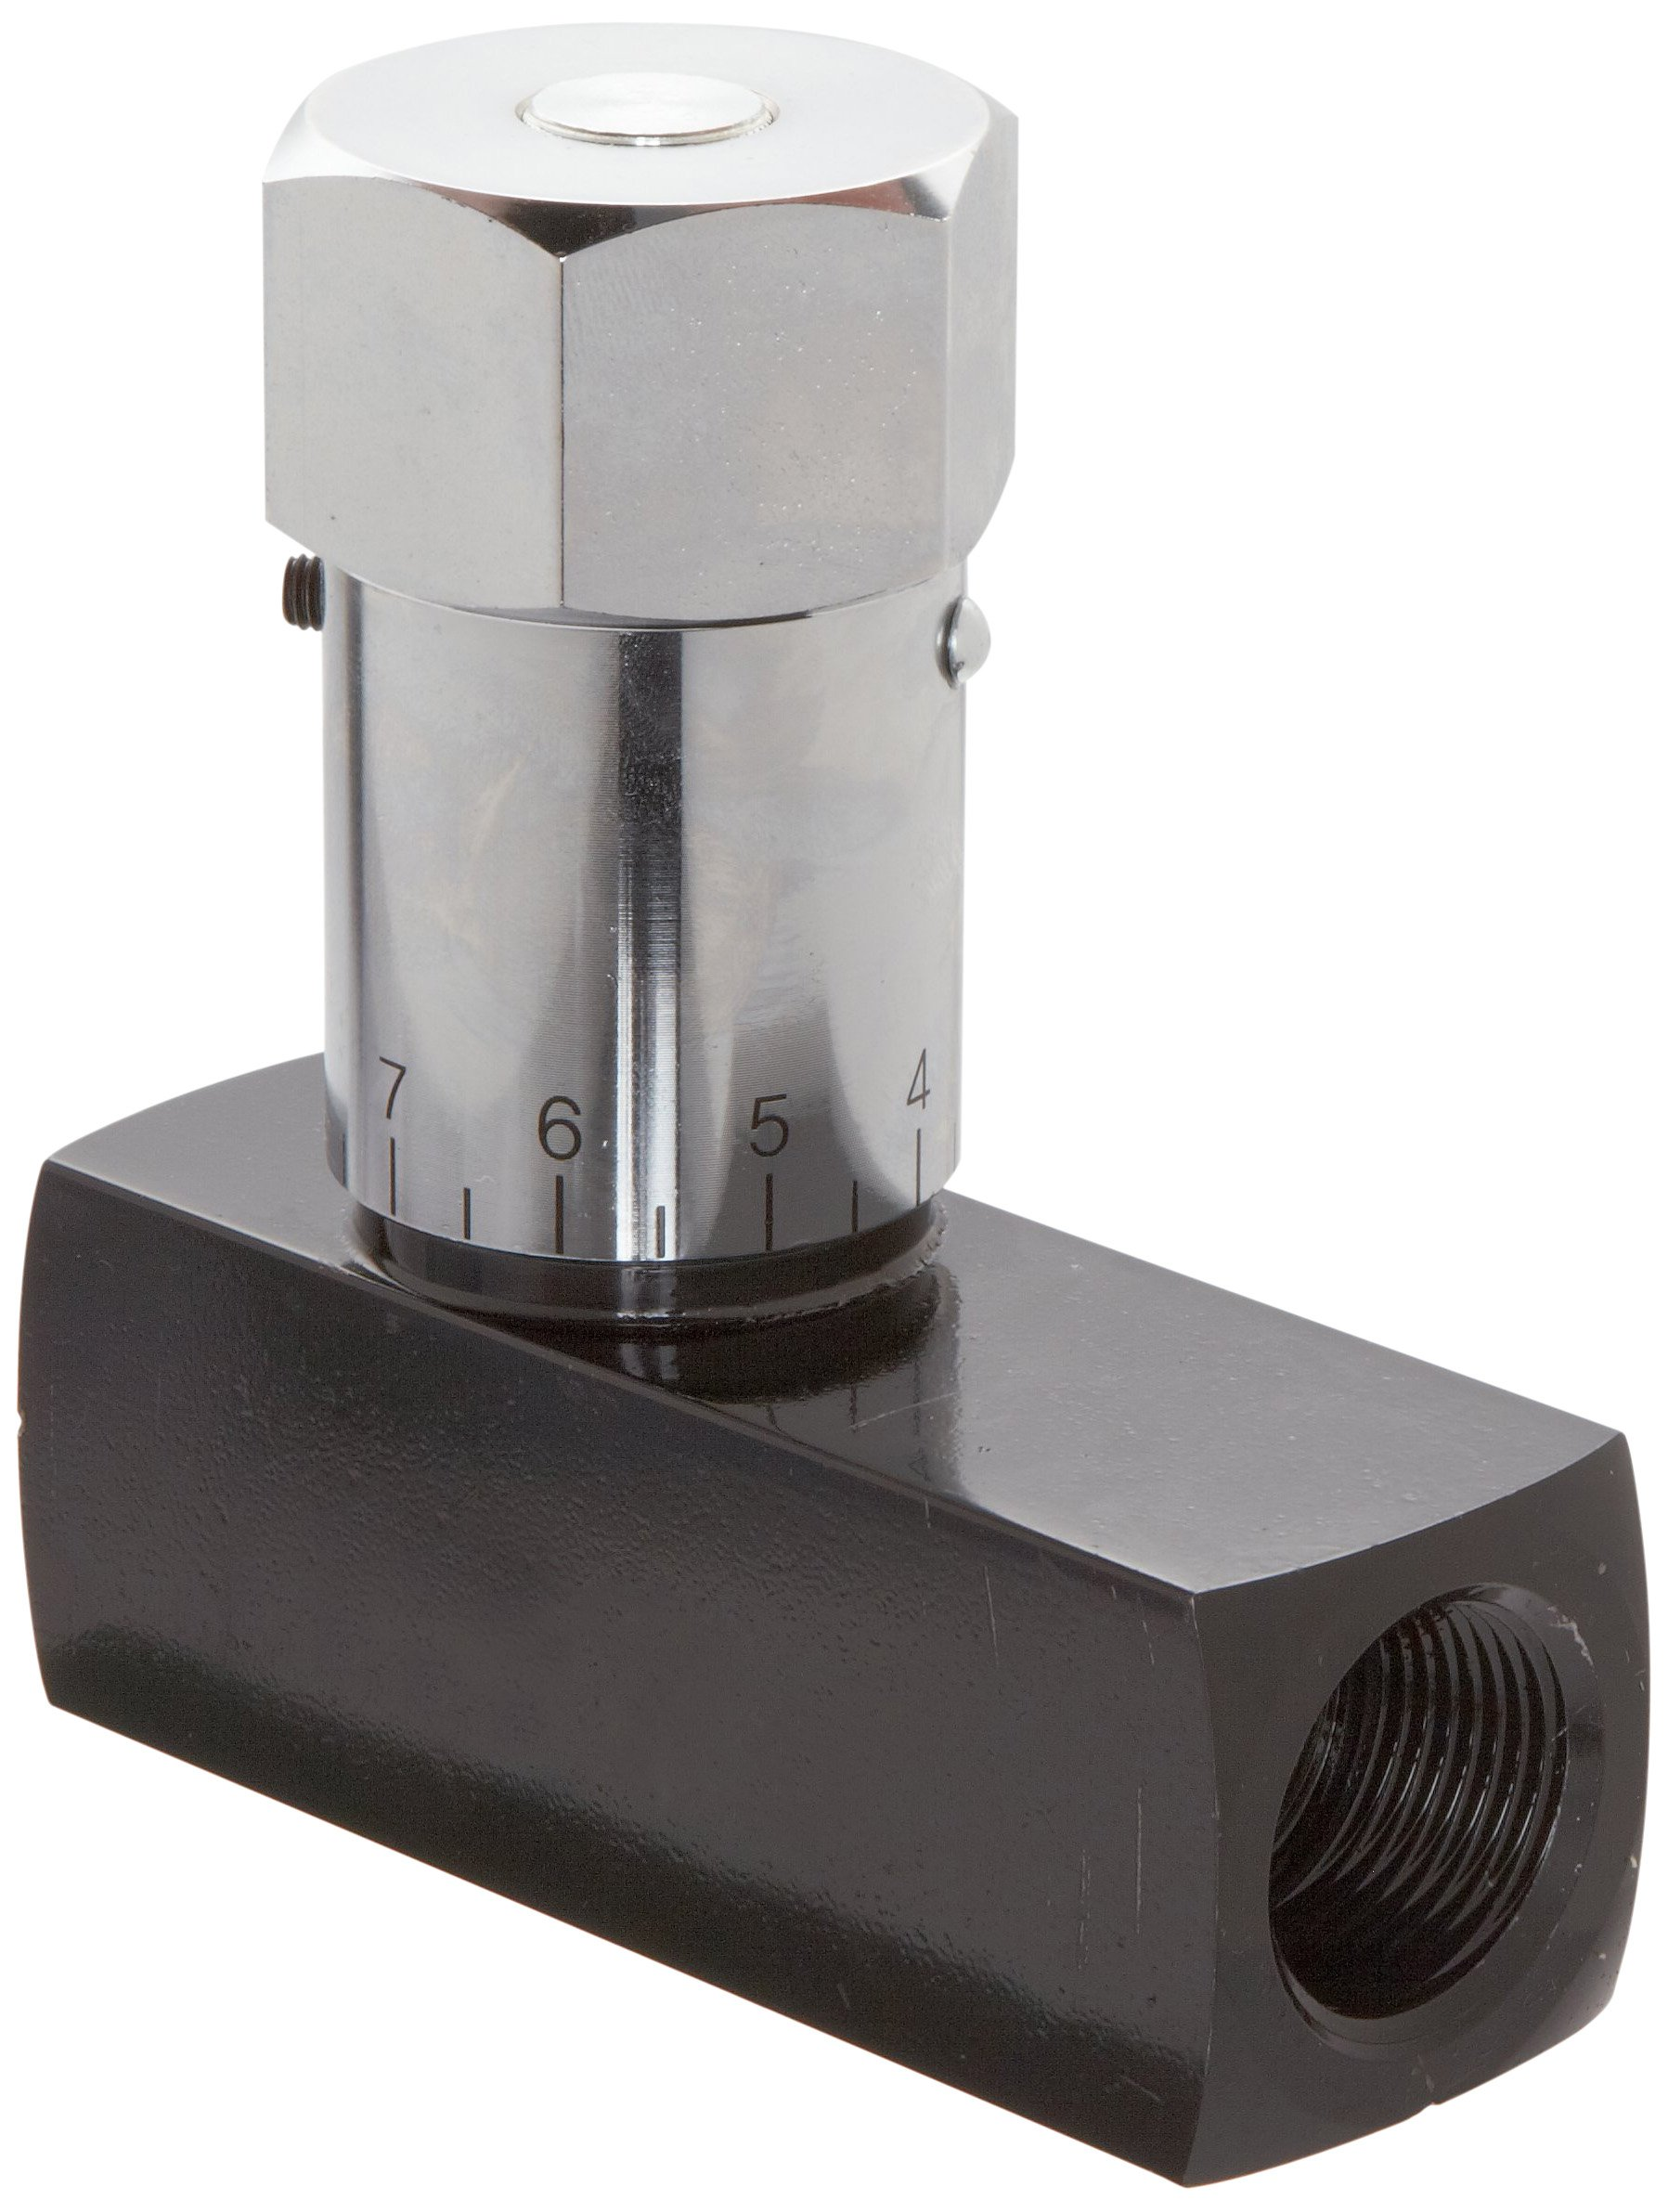 Prince WFC-1200 Wolverine Flow Control Valve, Carbon Steel, In-Line, 25 gpm Max Flow, 3/4'' NPTF